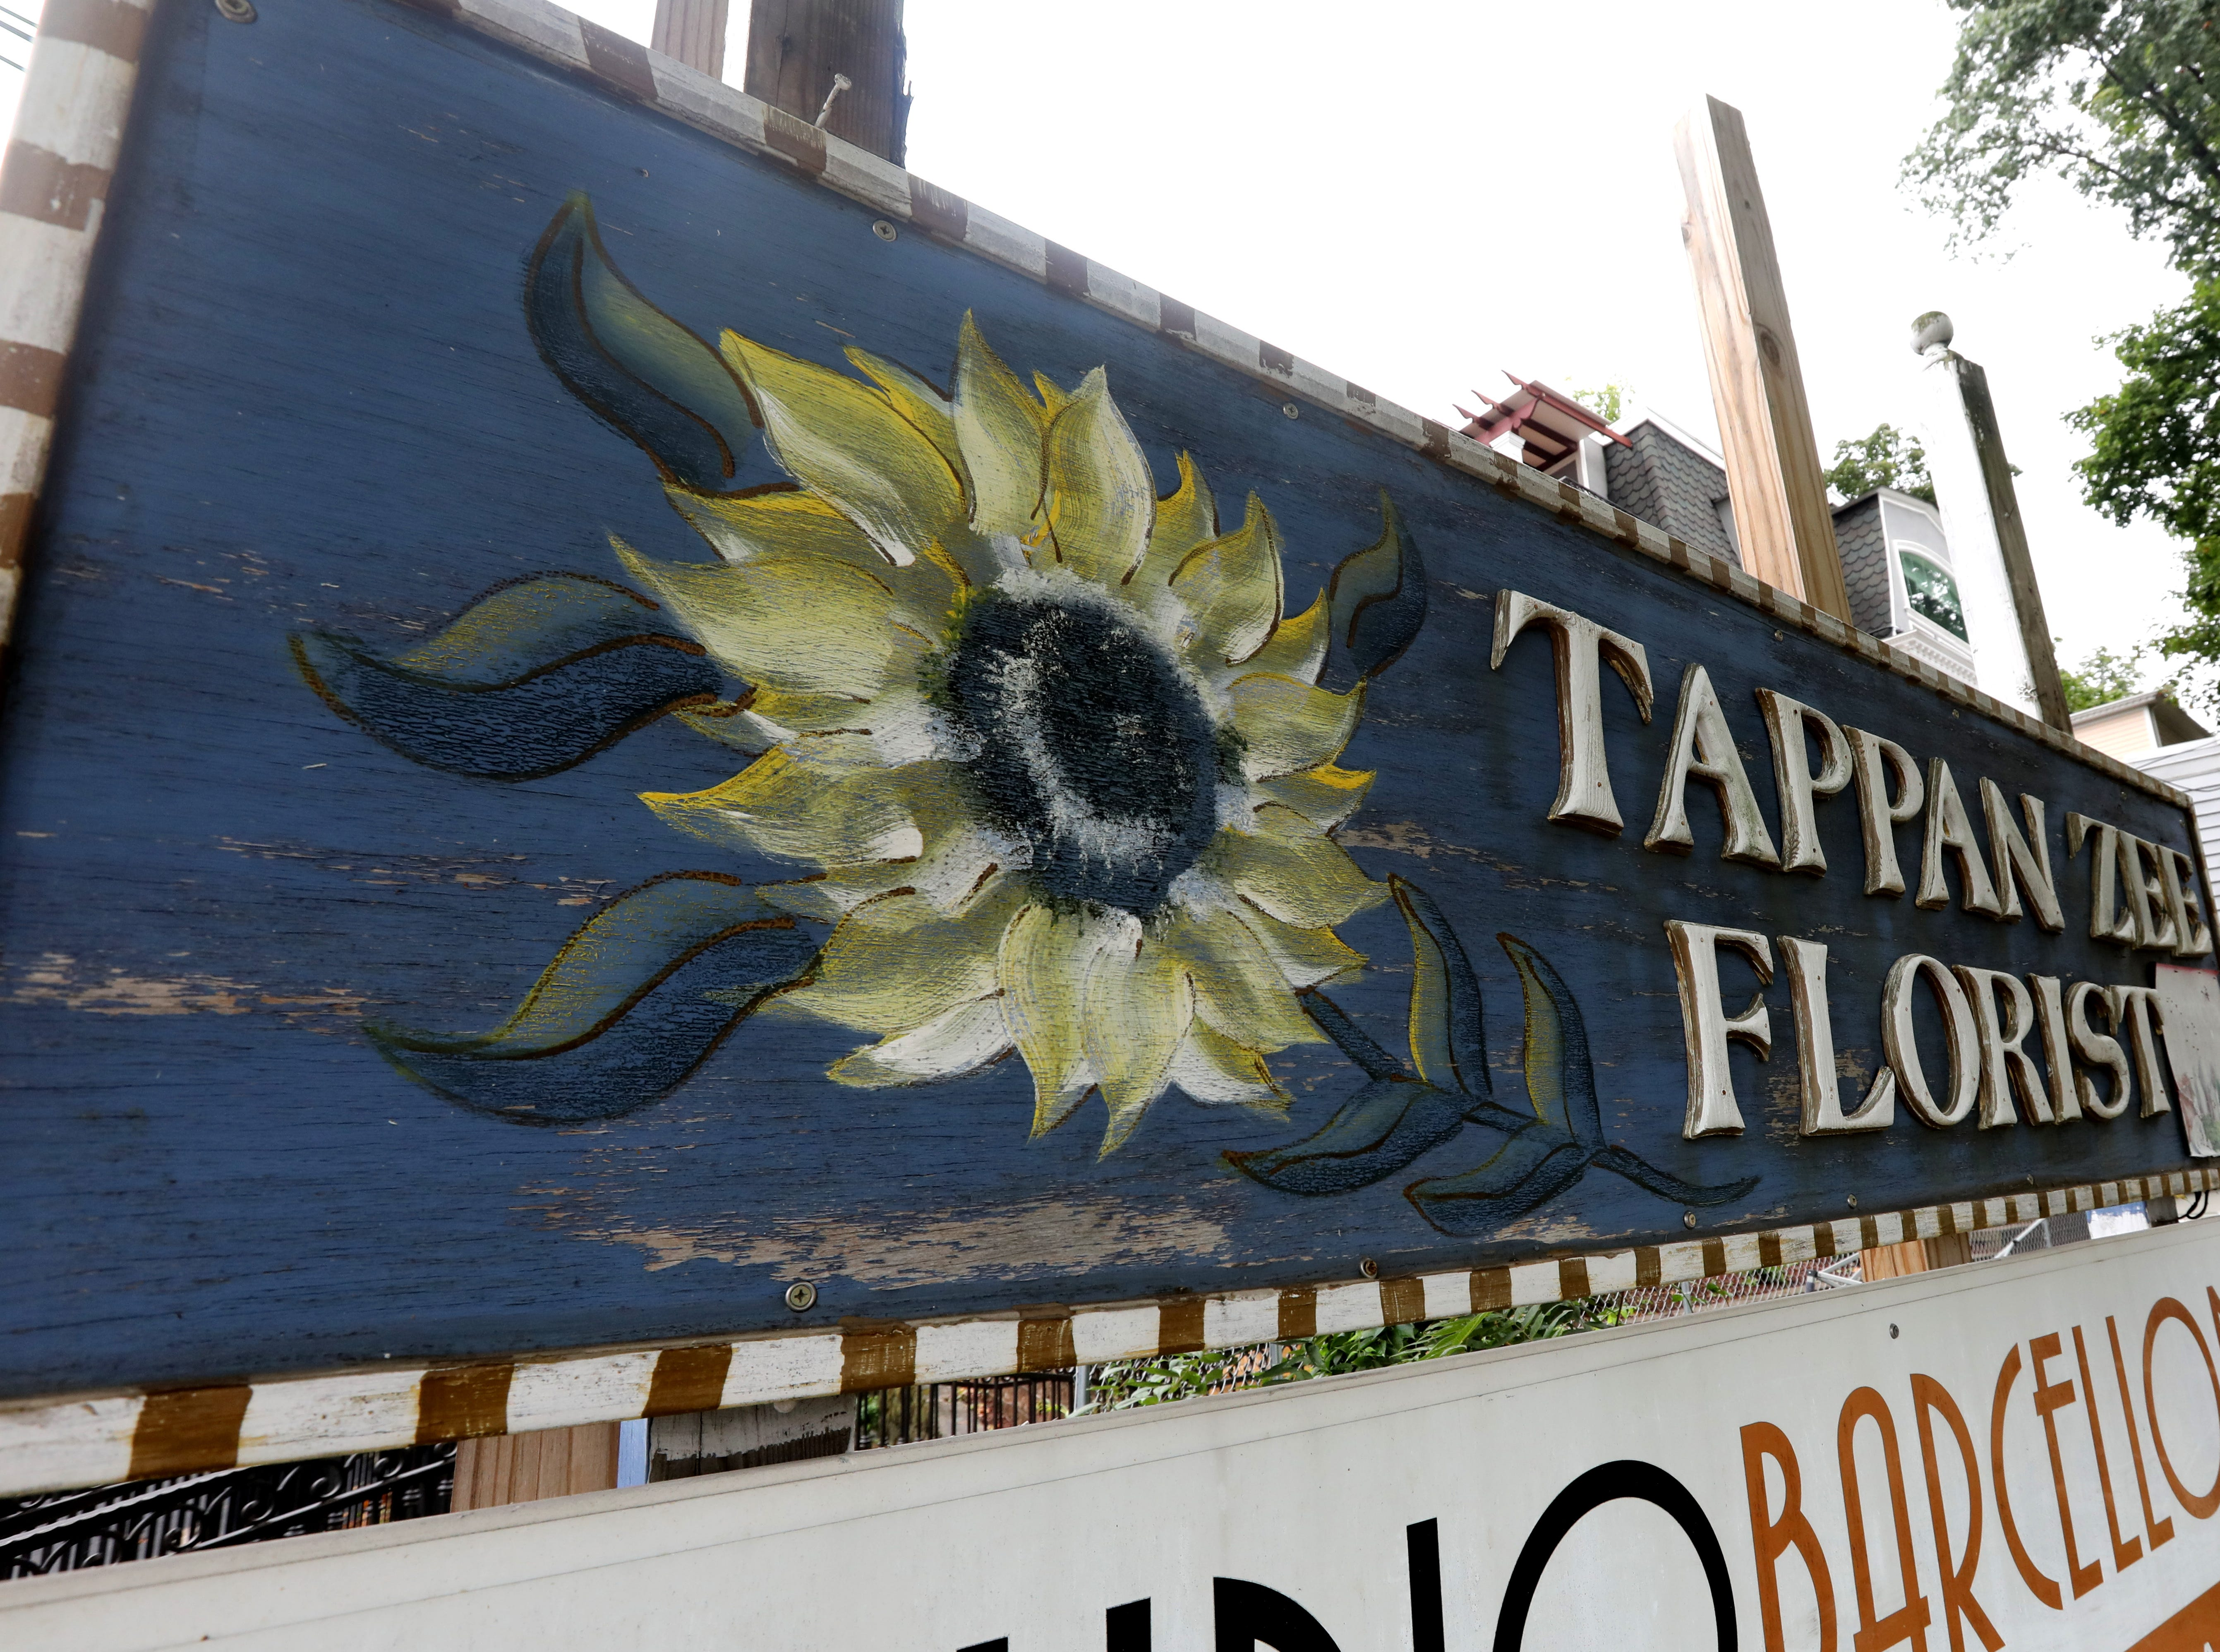 Tappan Zee Florist on Main St. in Nyack Sept. 12, 2018.